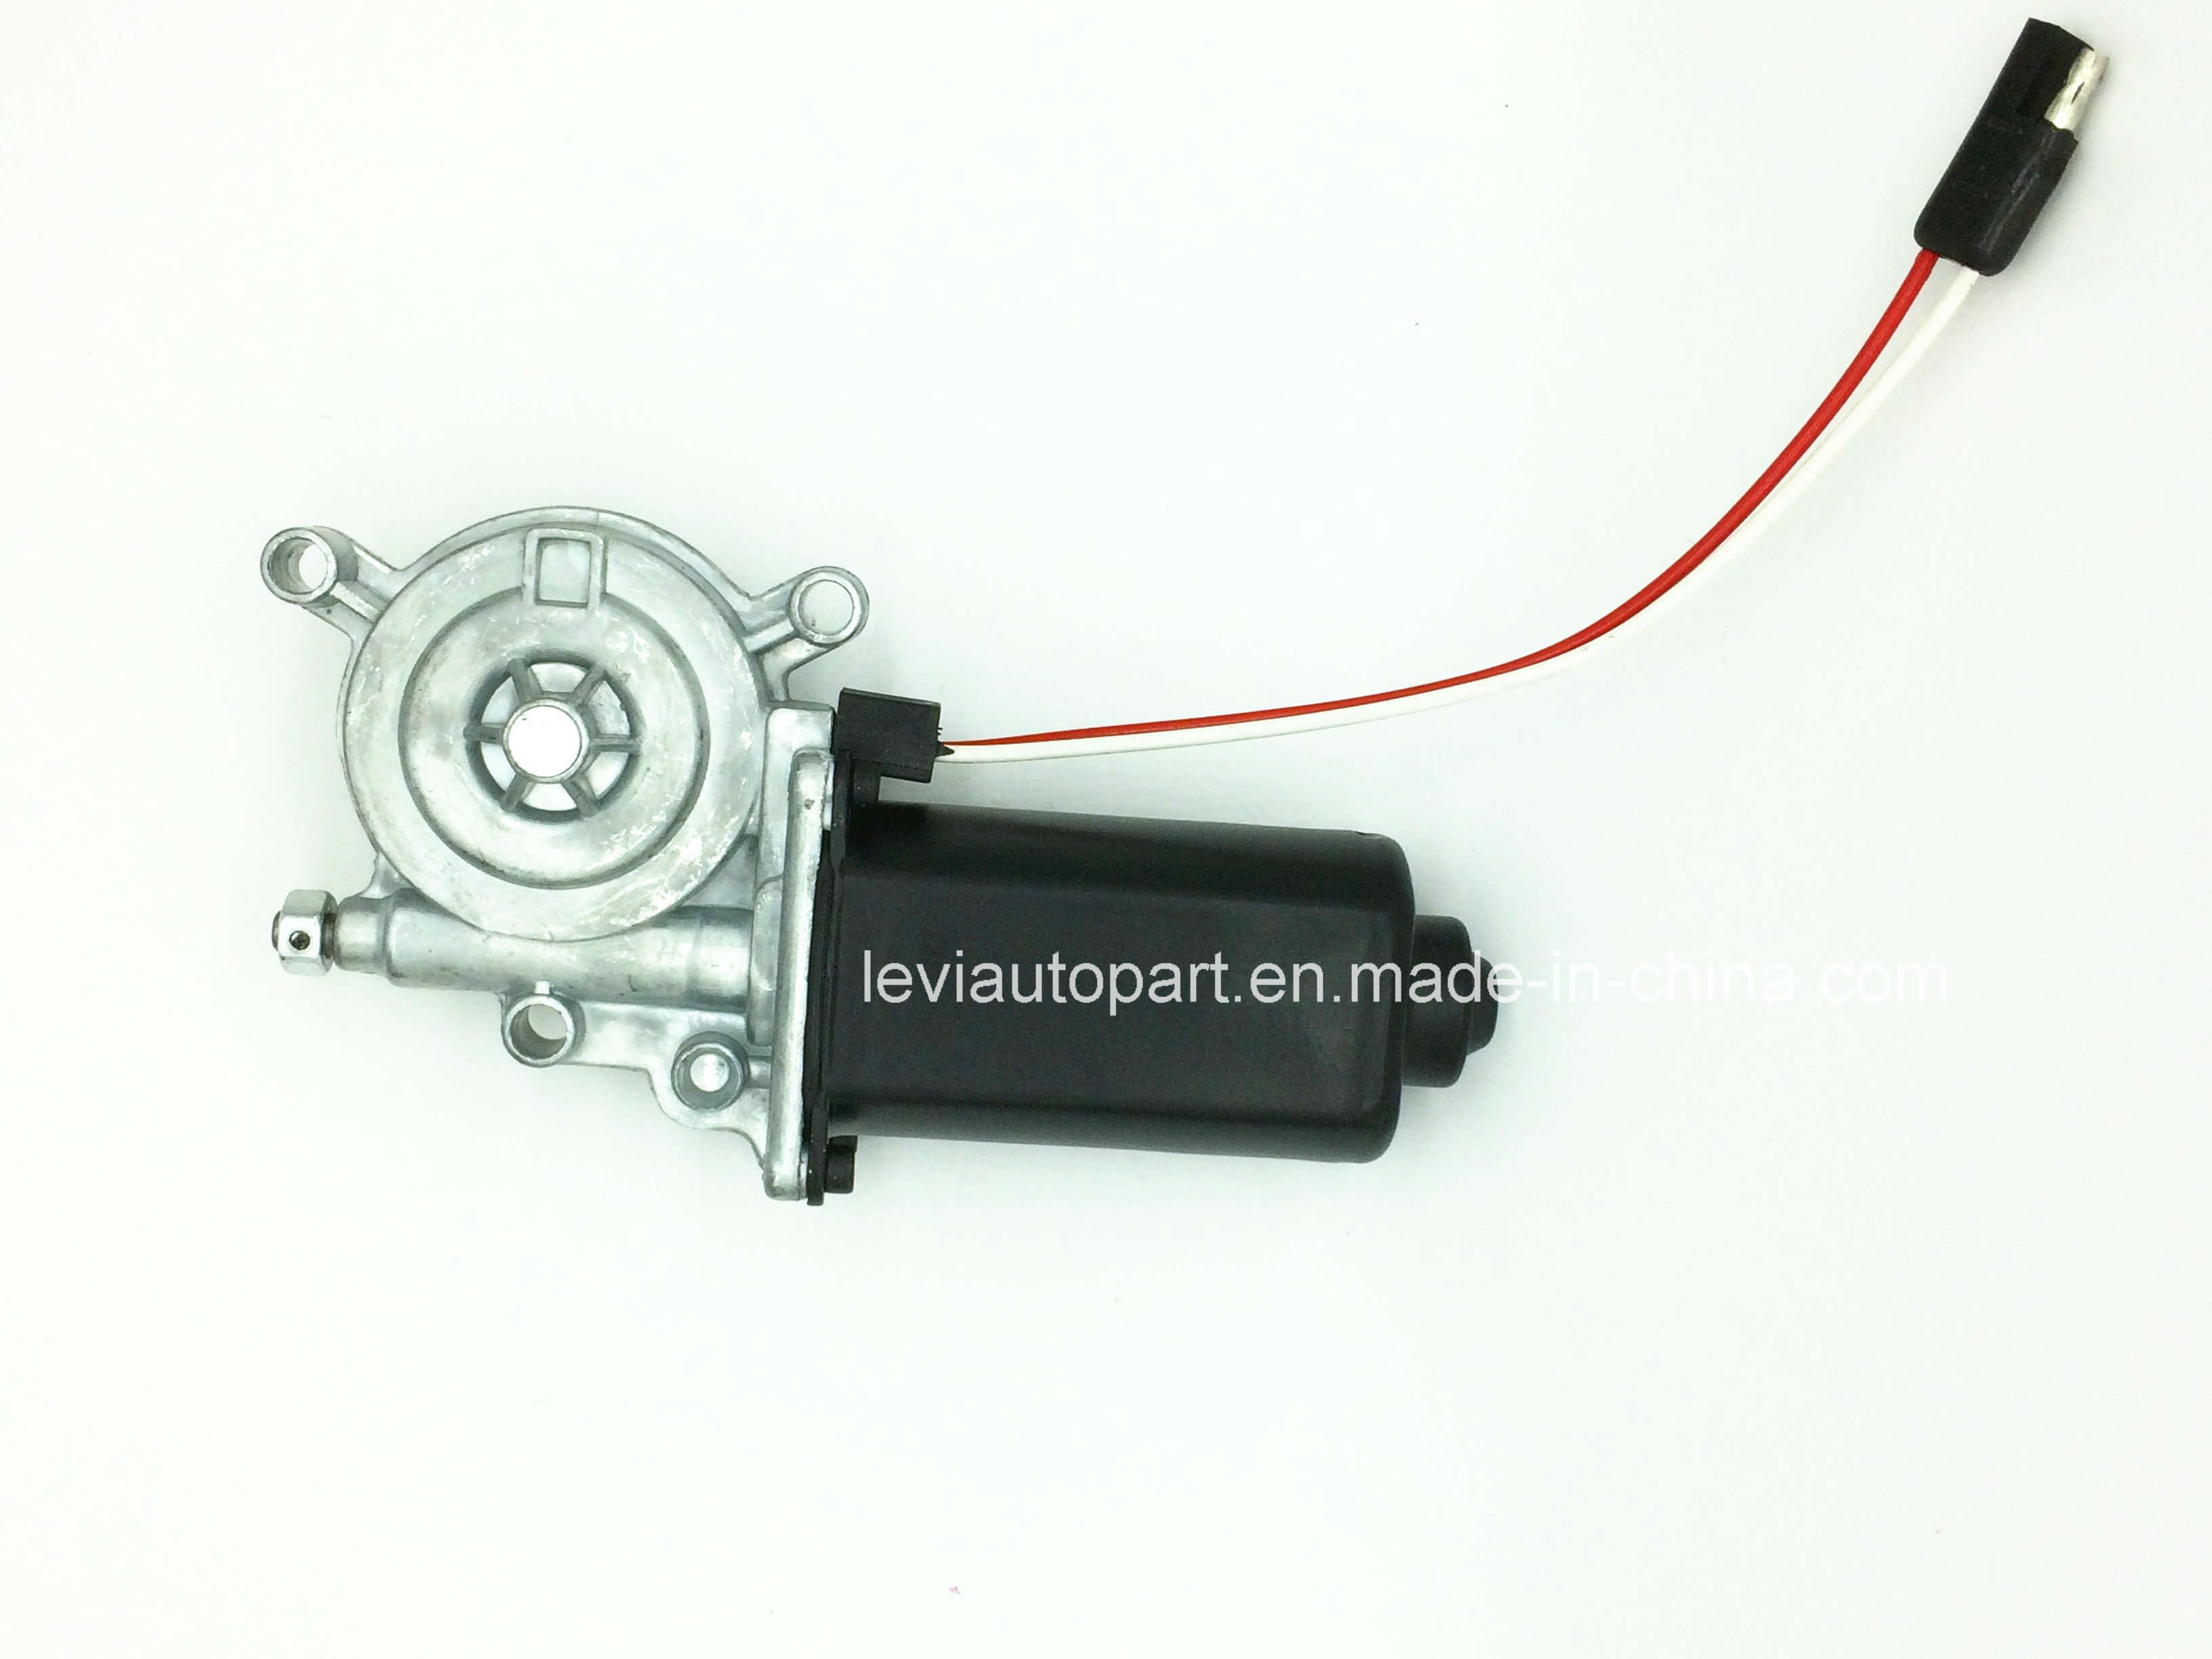 DC Motor Car Power Window Motor with 12-Tooth Gear